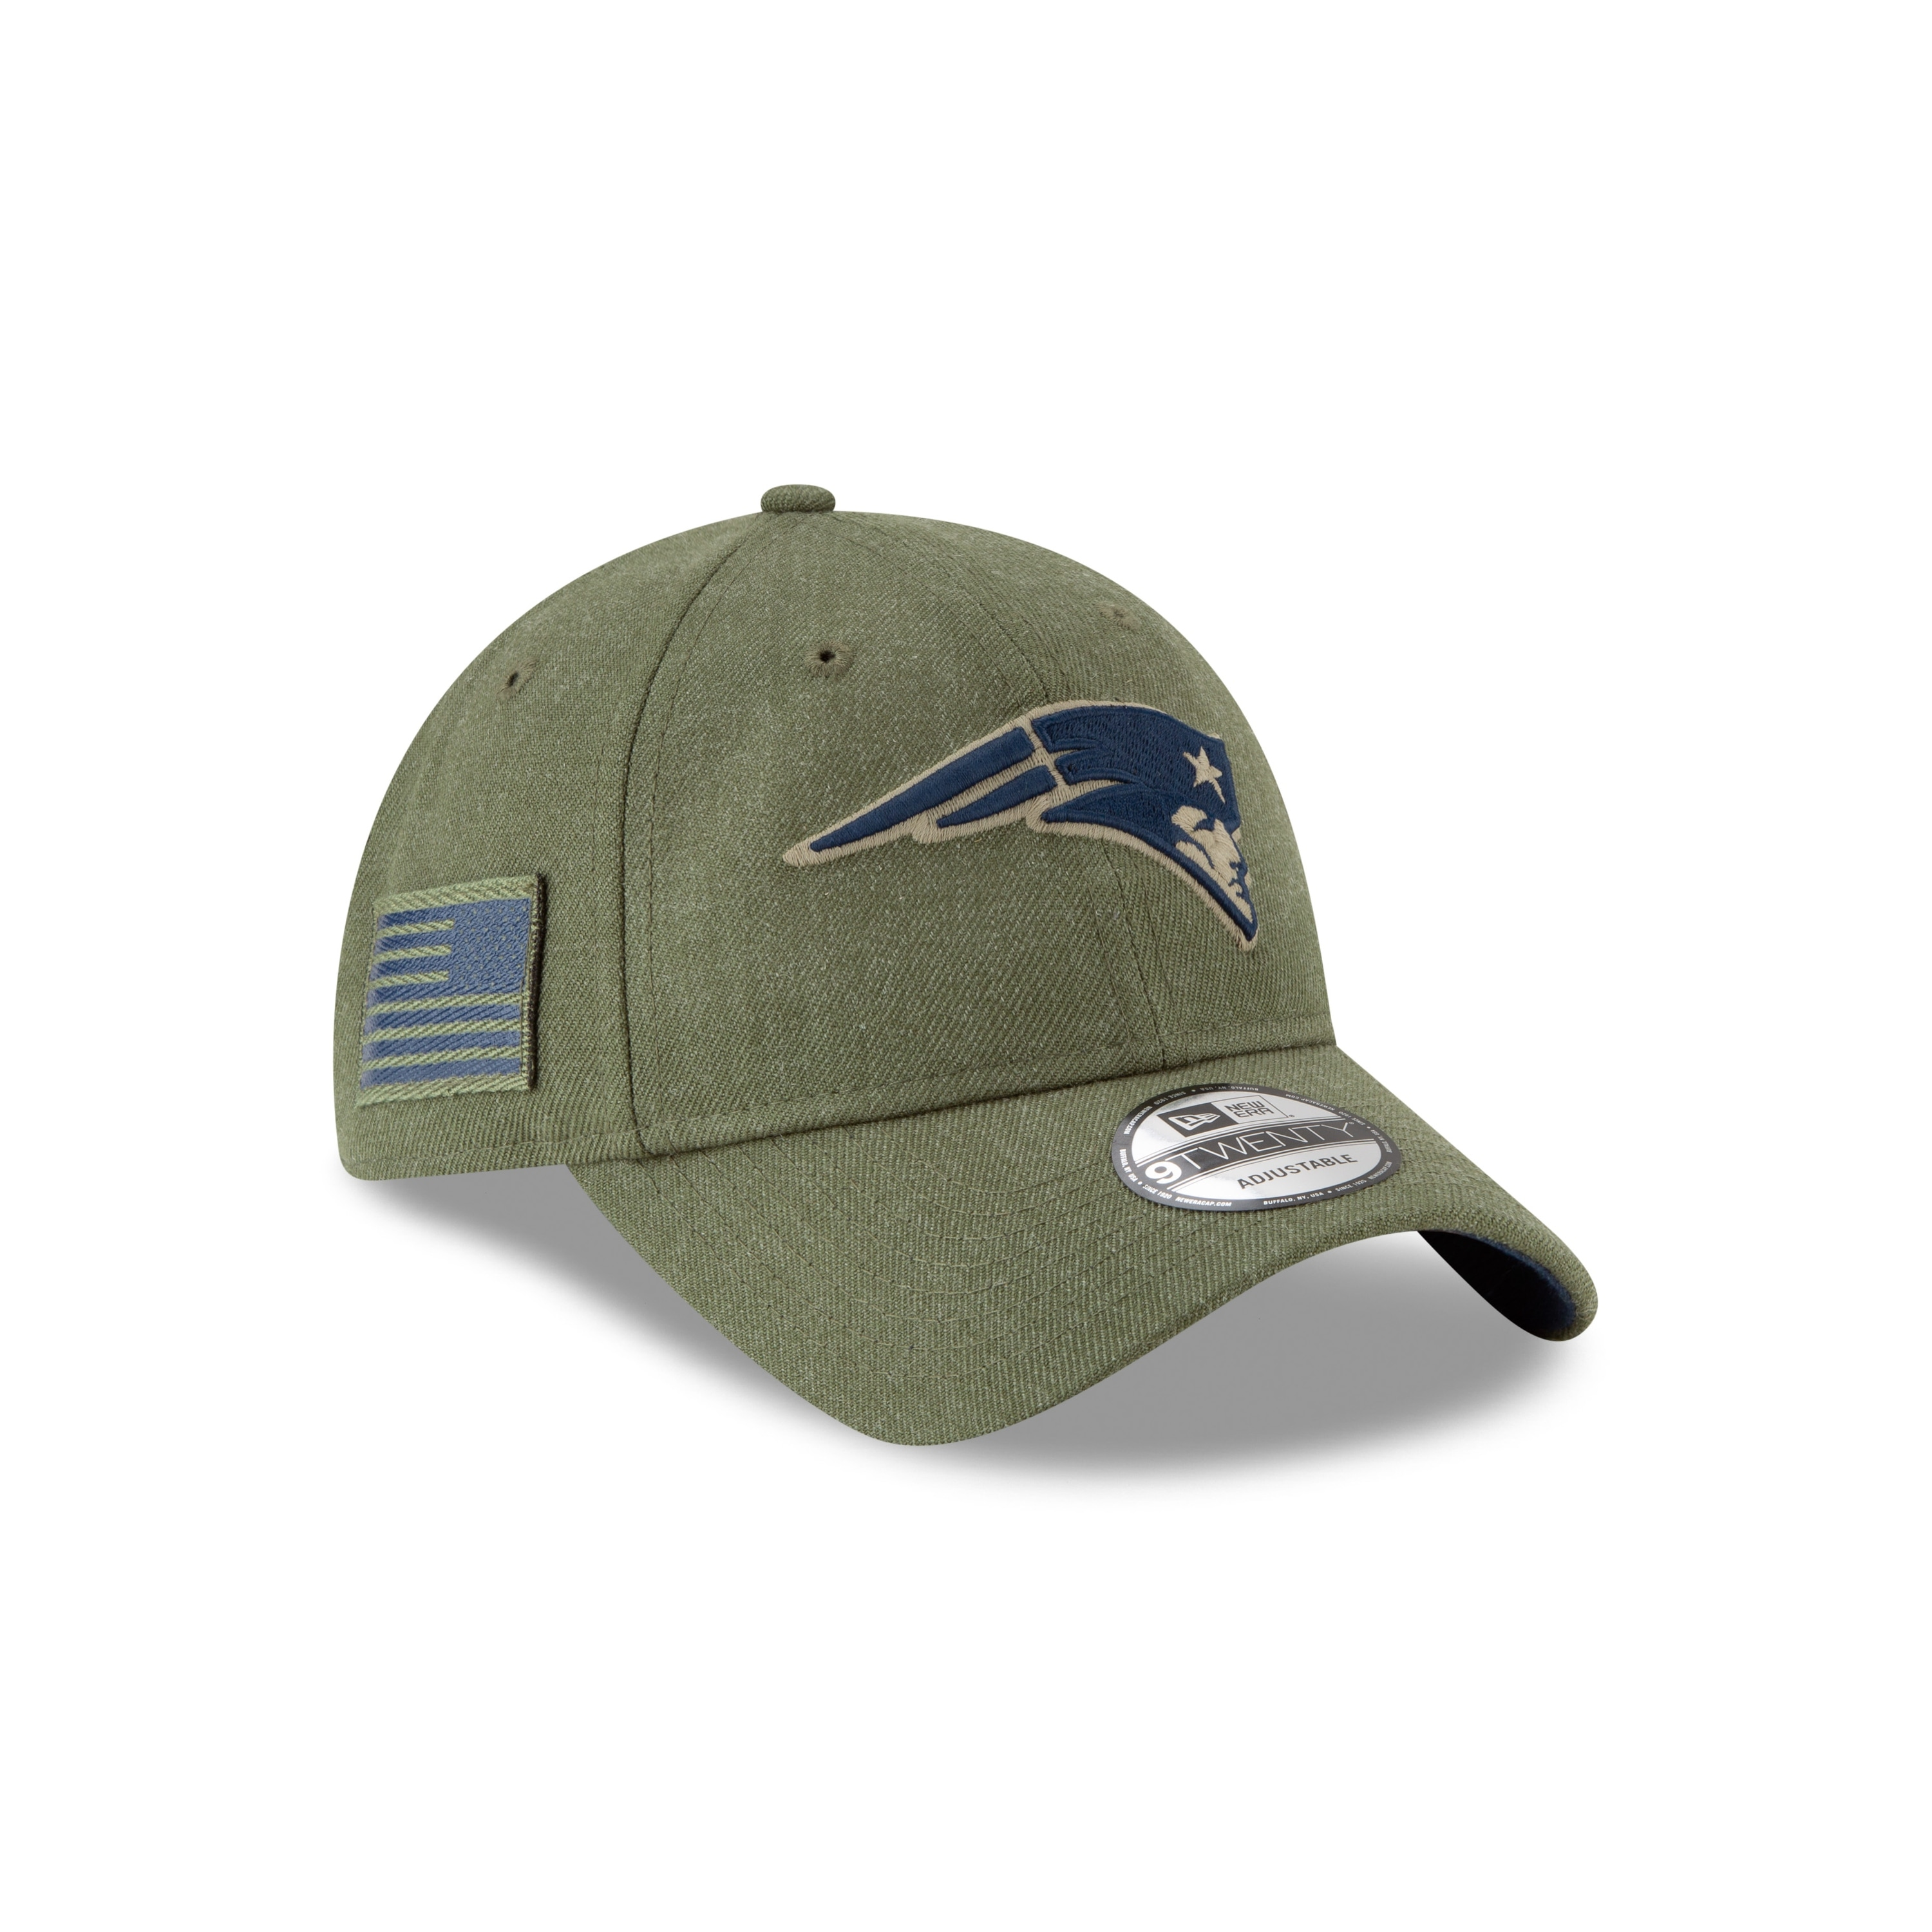 premium selection 29275 9c01b New England Patriots 9TWENTY 2018 On Field Salute to Service Adjustable Hat